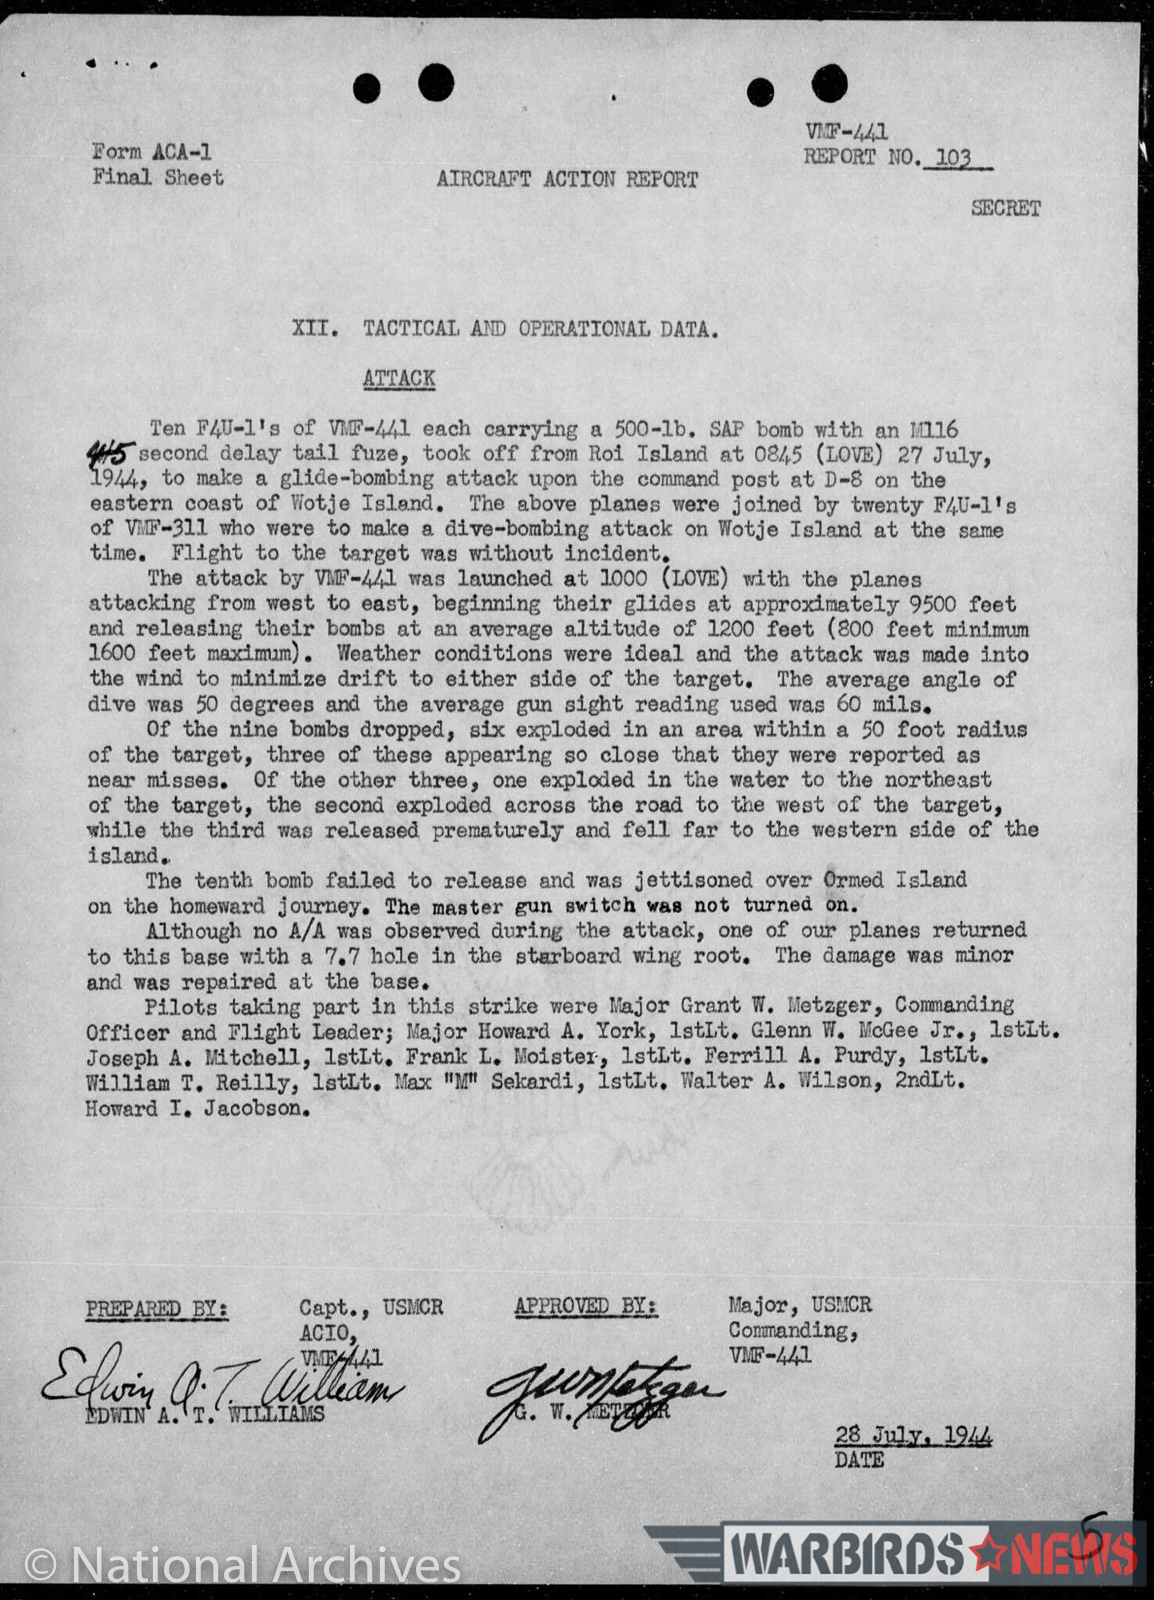 VMF-441 Operational Log for July 28th, 1944 detailing an attack by the squadron's Corsairs upon an enemy installation on Wotje Island. (image via Chris Fahey)